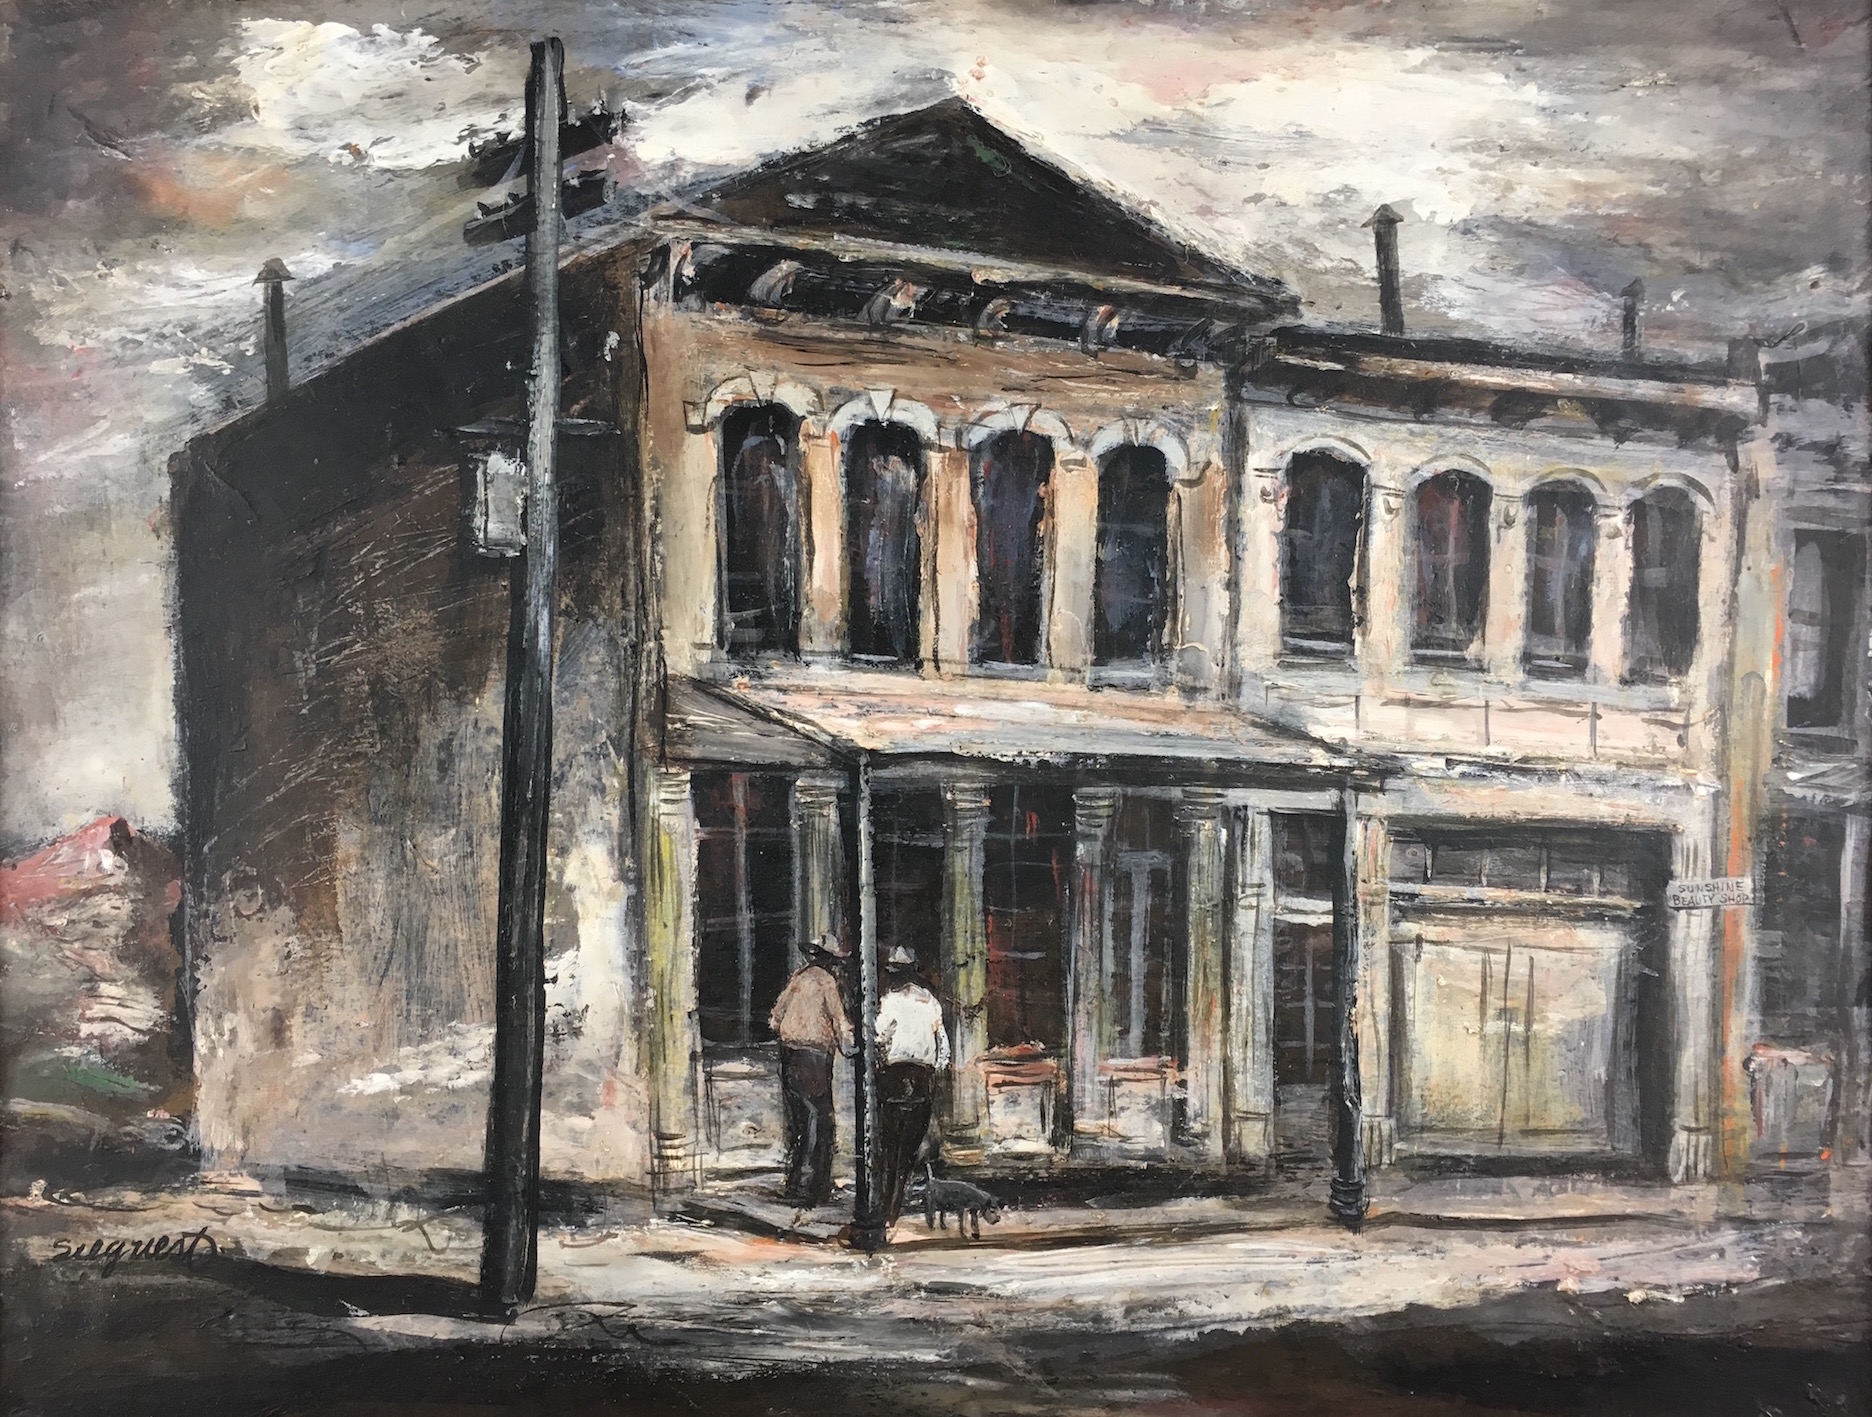 """Louis Bassi Siegriest, Virginia City, oil on board, """"A Comstock Miner's Home"""" Virginia City, 1946, from the Nevada Fine Art Collection."""